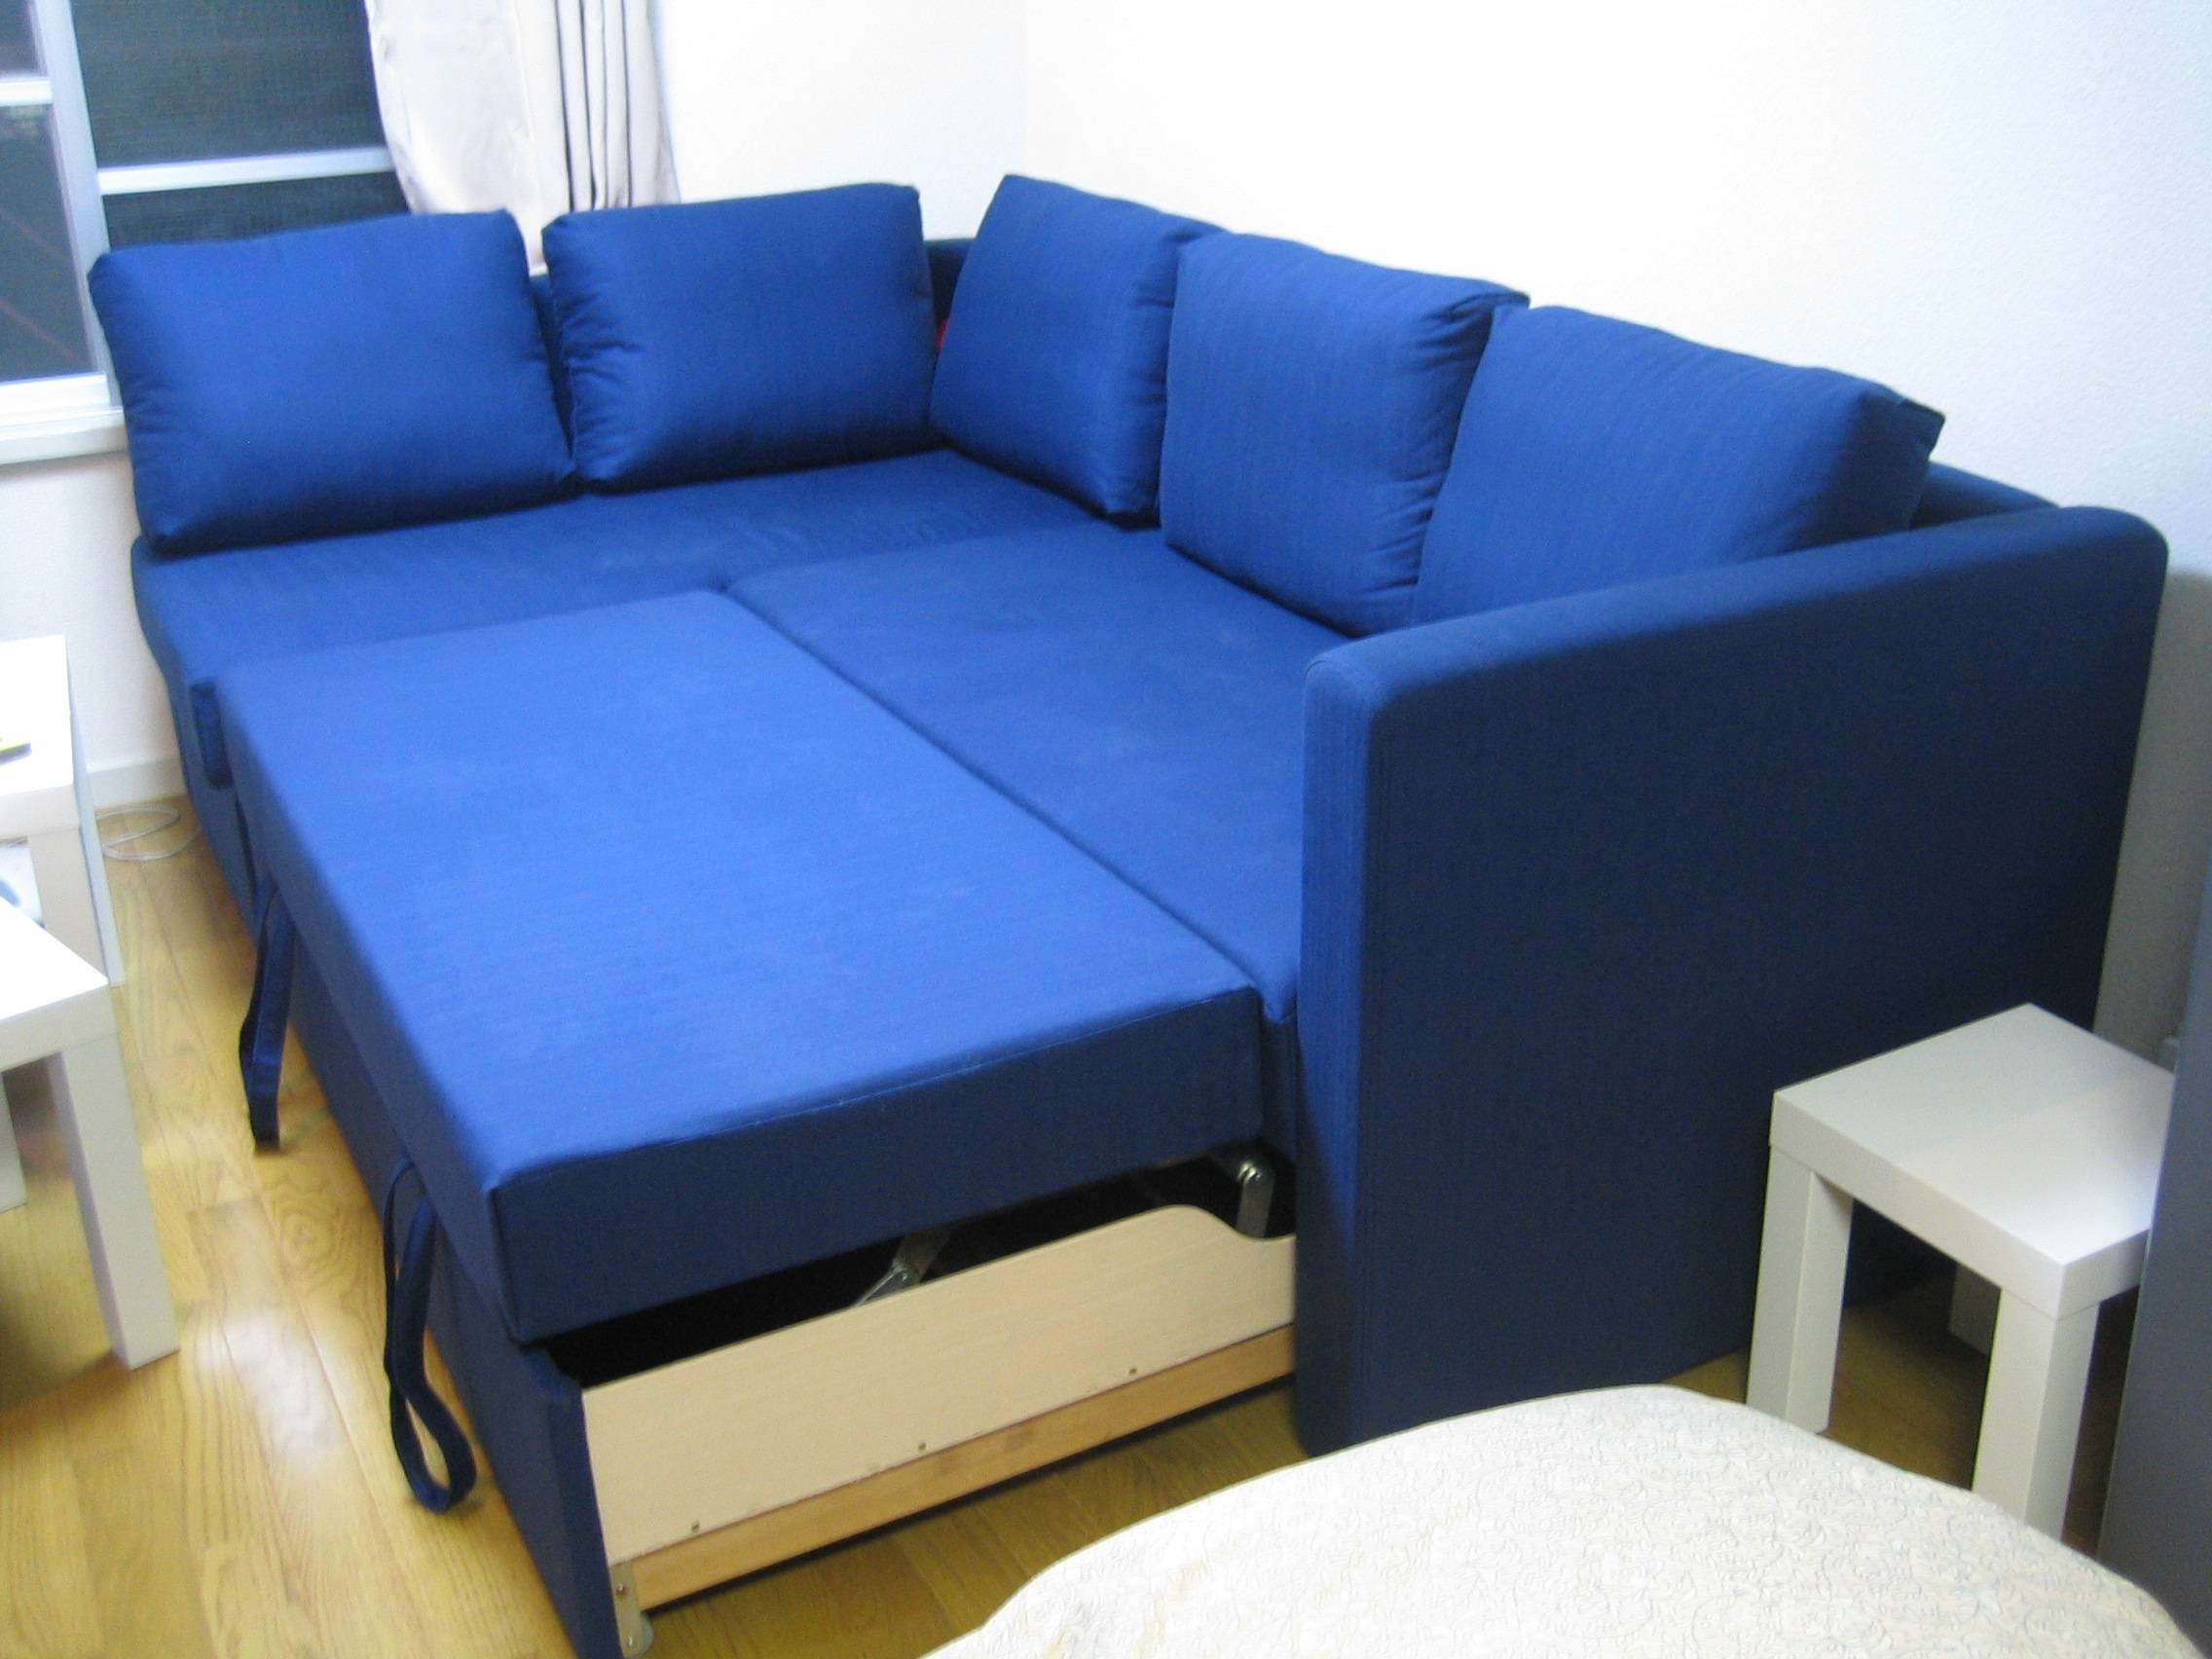 Furniture: Ikea Kivik Sofa Bed | Ikea Sofa Beds | Ikea Leather Pertaining To Cushion Sofa Beds (View 10 of 30)